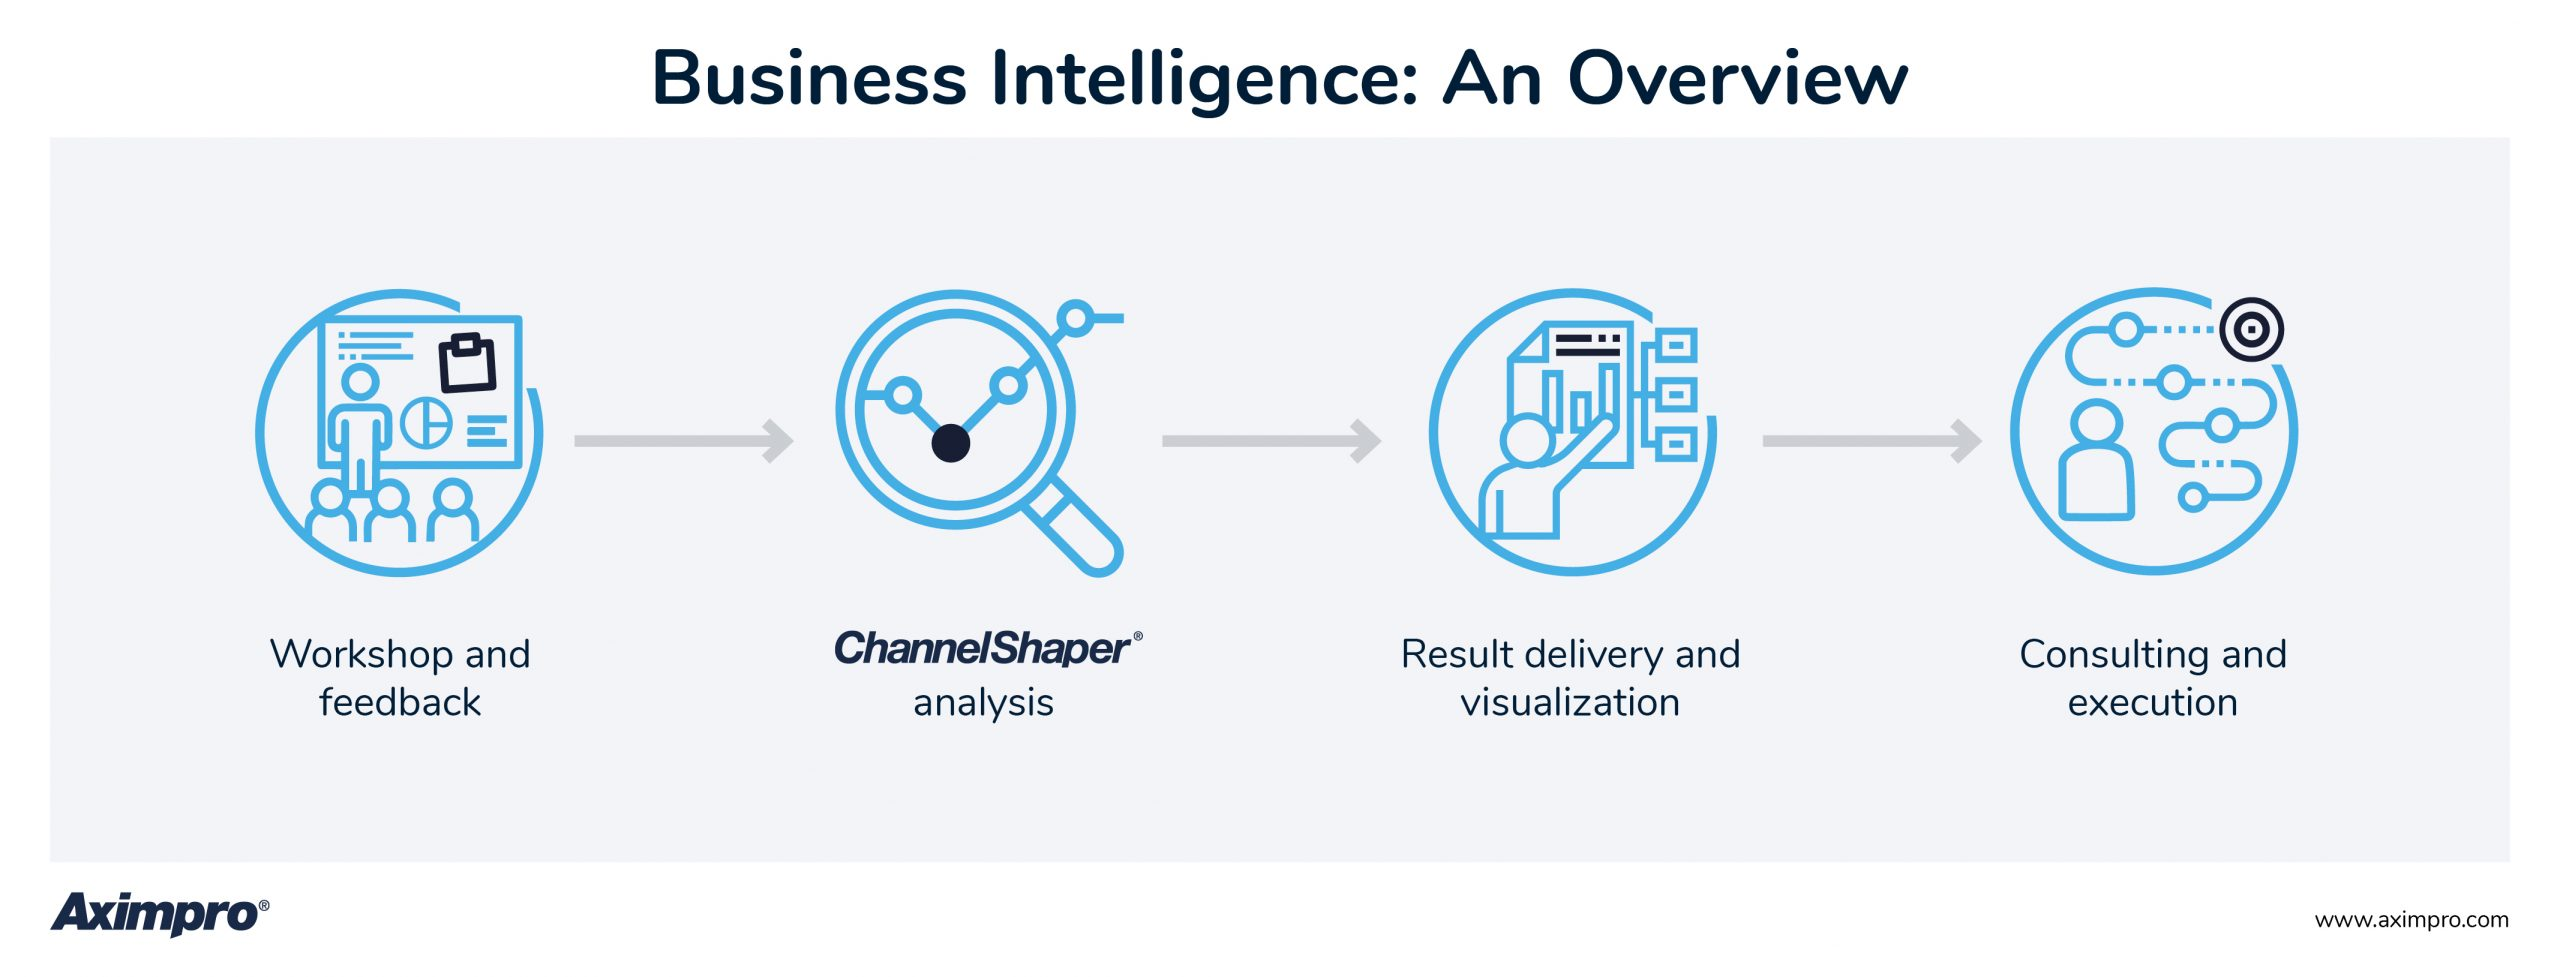 Aximpro Business Intelligence